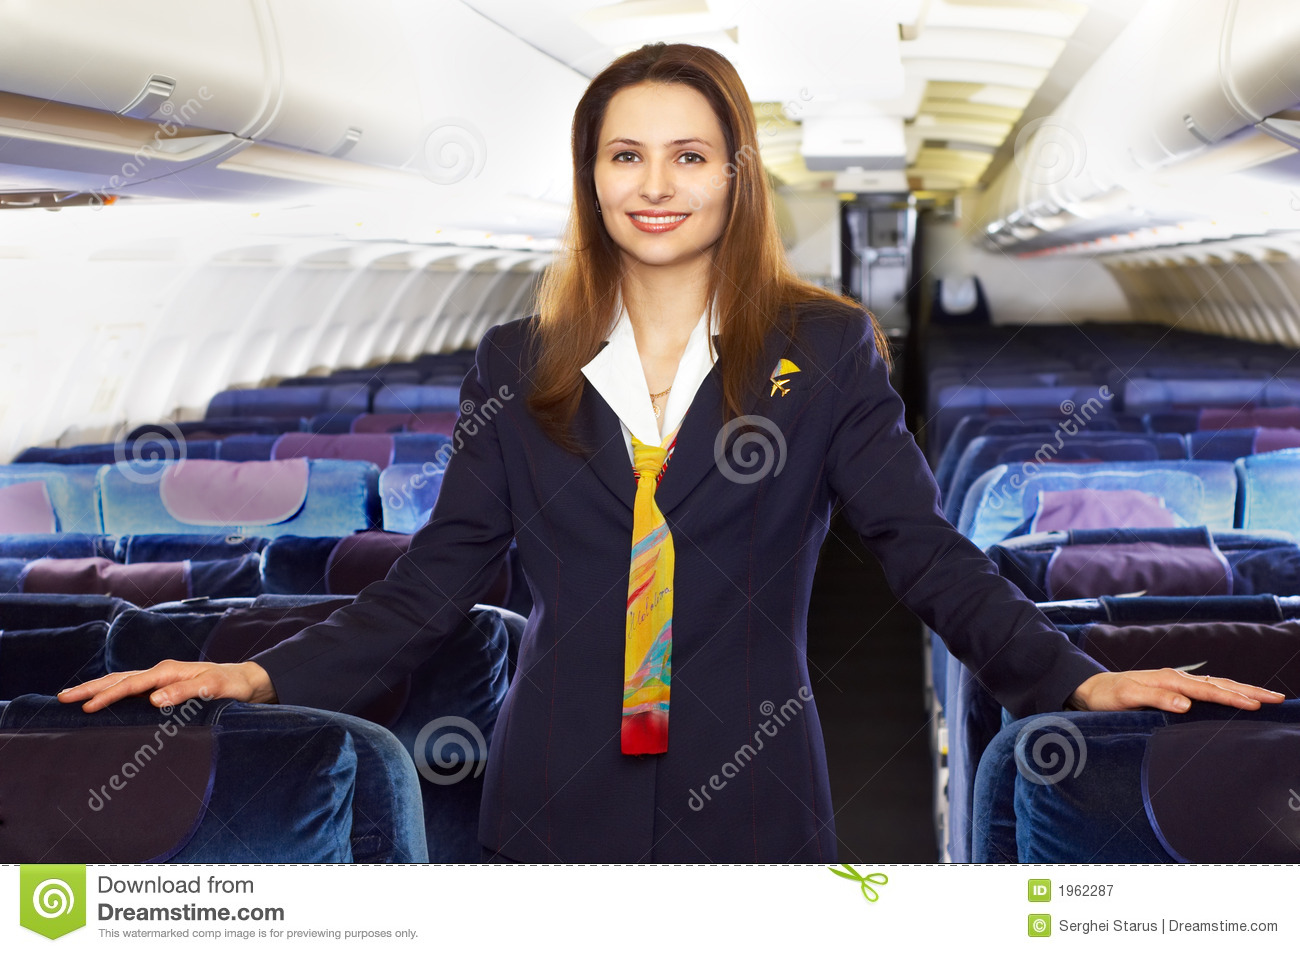 De stewardess van de lucht (stewardess)